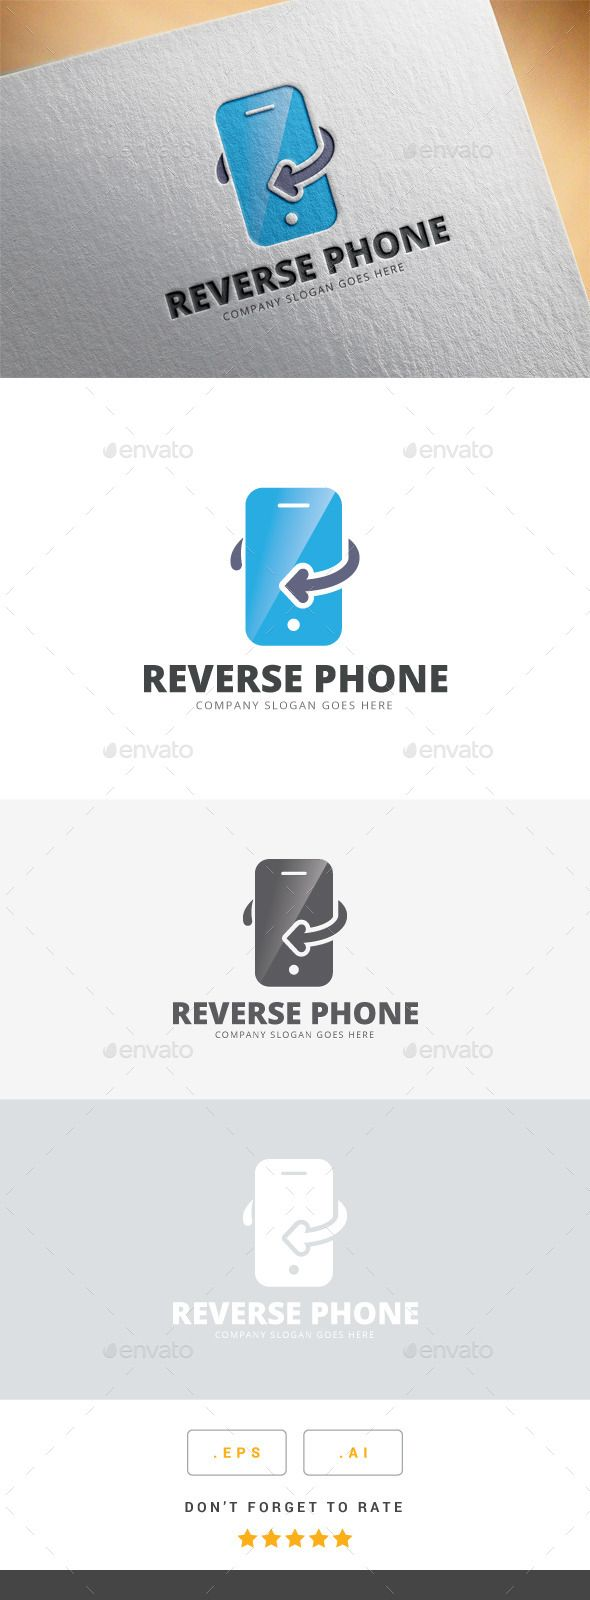 Reverse Phone Logo (AI Illustrator, Resizable, CS, abstract, brand, business, company, corporate, creative, icon, idea, identity, logo, media, modern, objects, professional, reverse phone, service, smartphone, symbol, theme, web)